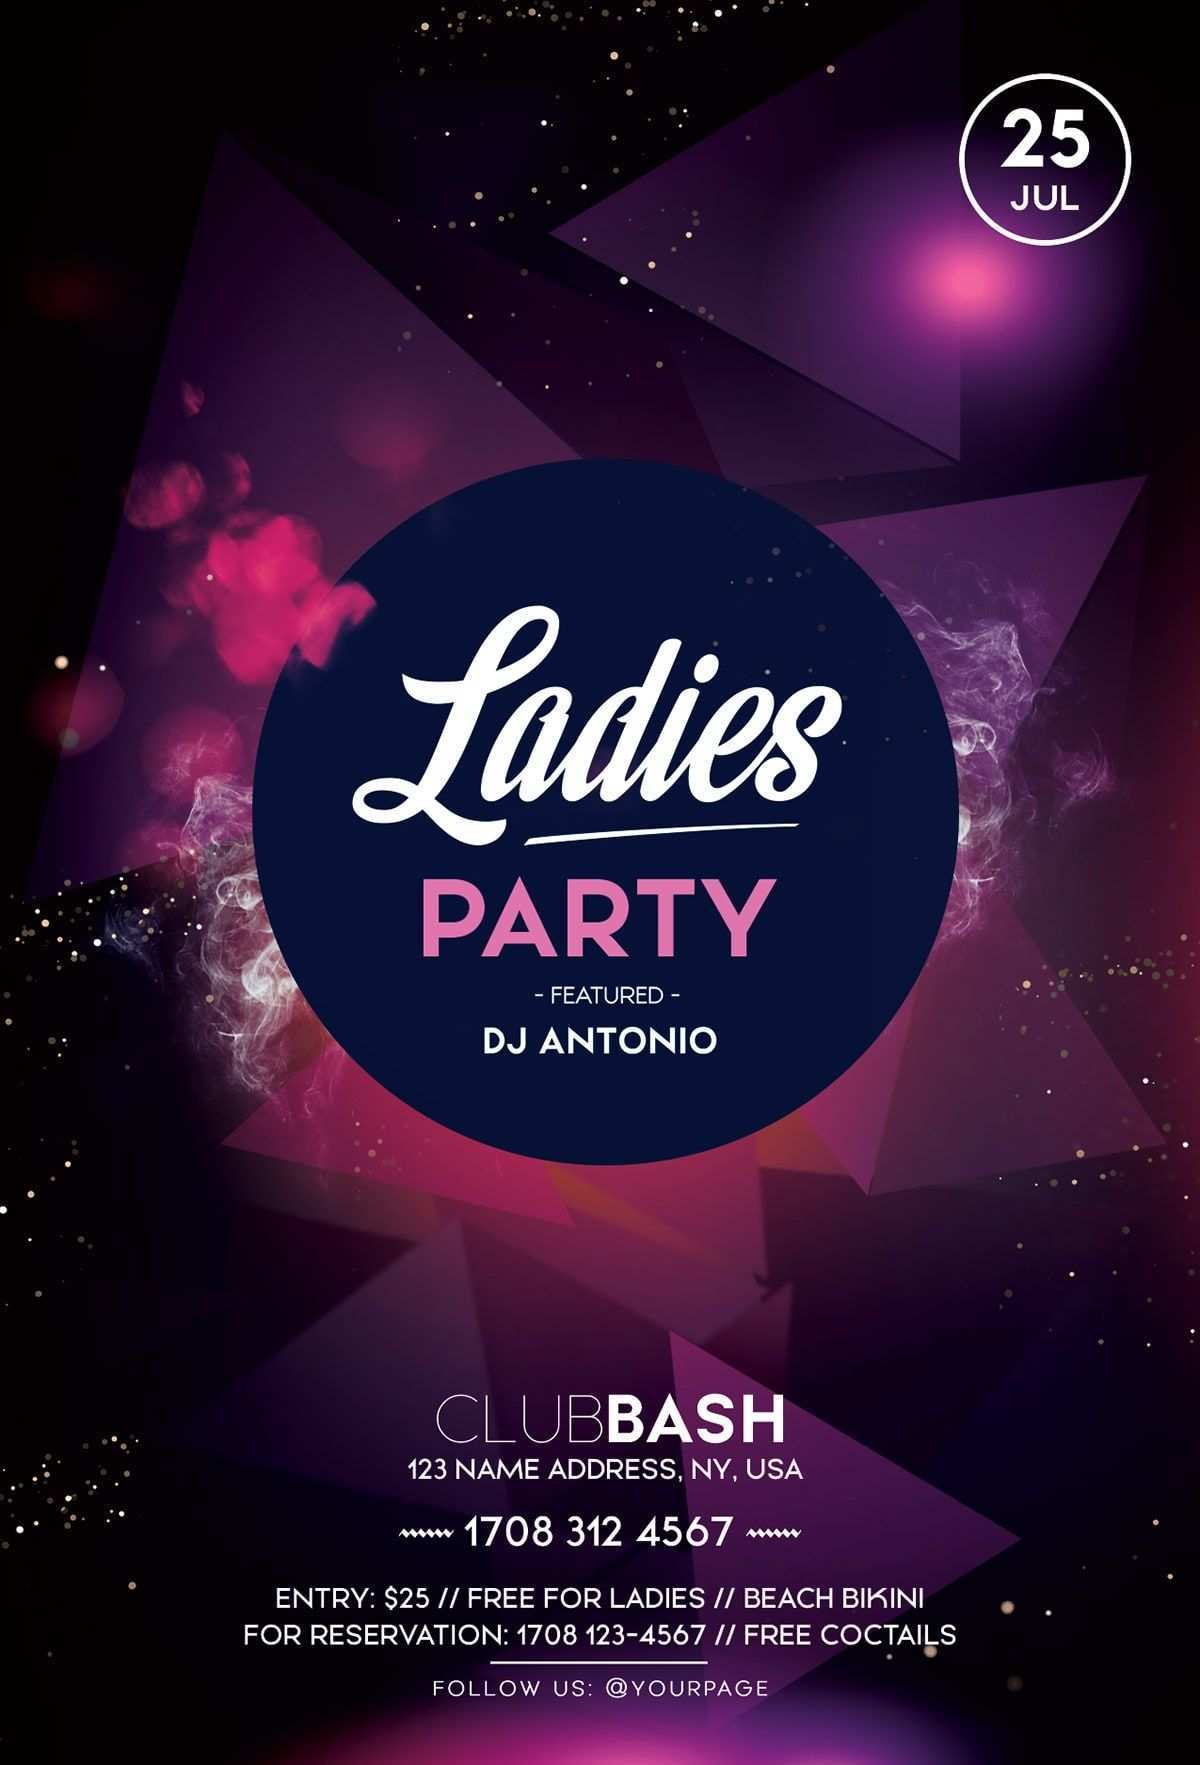 Ladies Party Psd Free Flyer Template Free Psd Photoshop Flyer Freepsd Freeflyer Ladiesflye Free Psd Flyer Templates Free Flyer Templates Free Psd Flyer